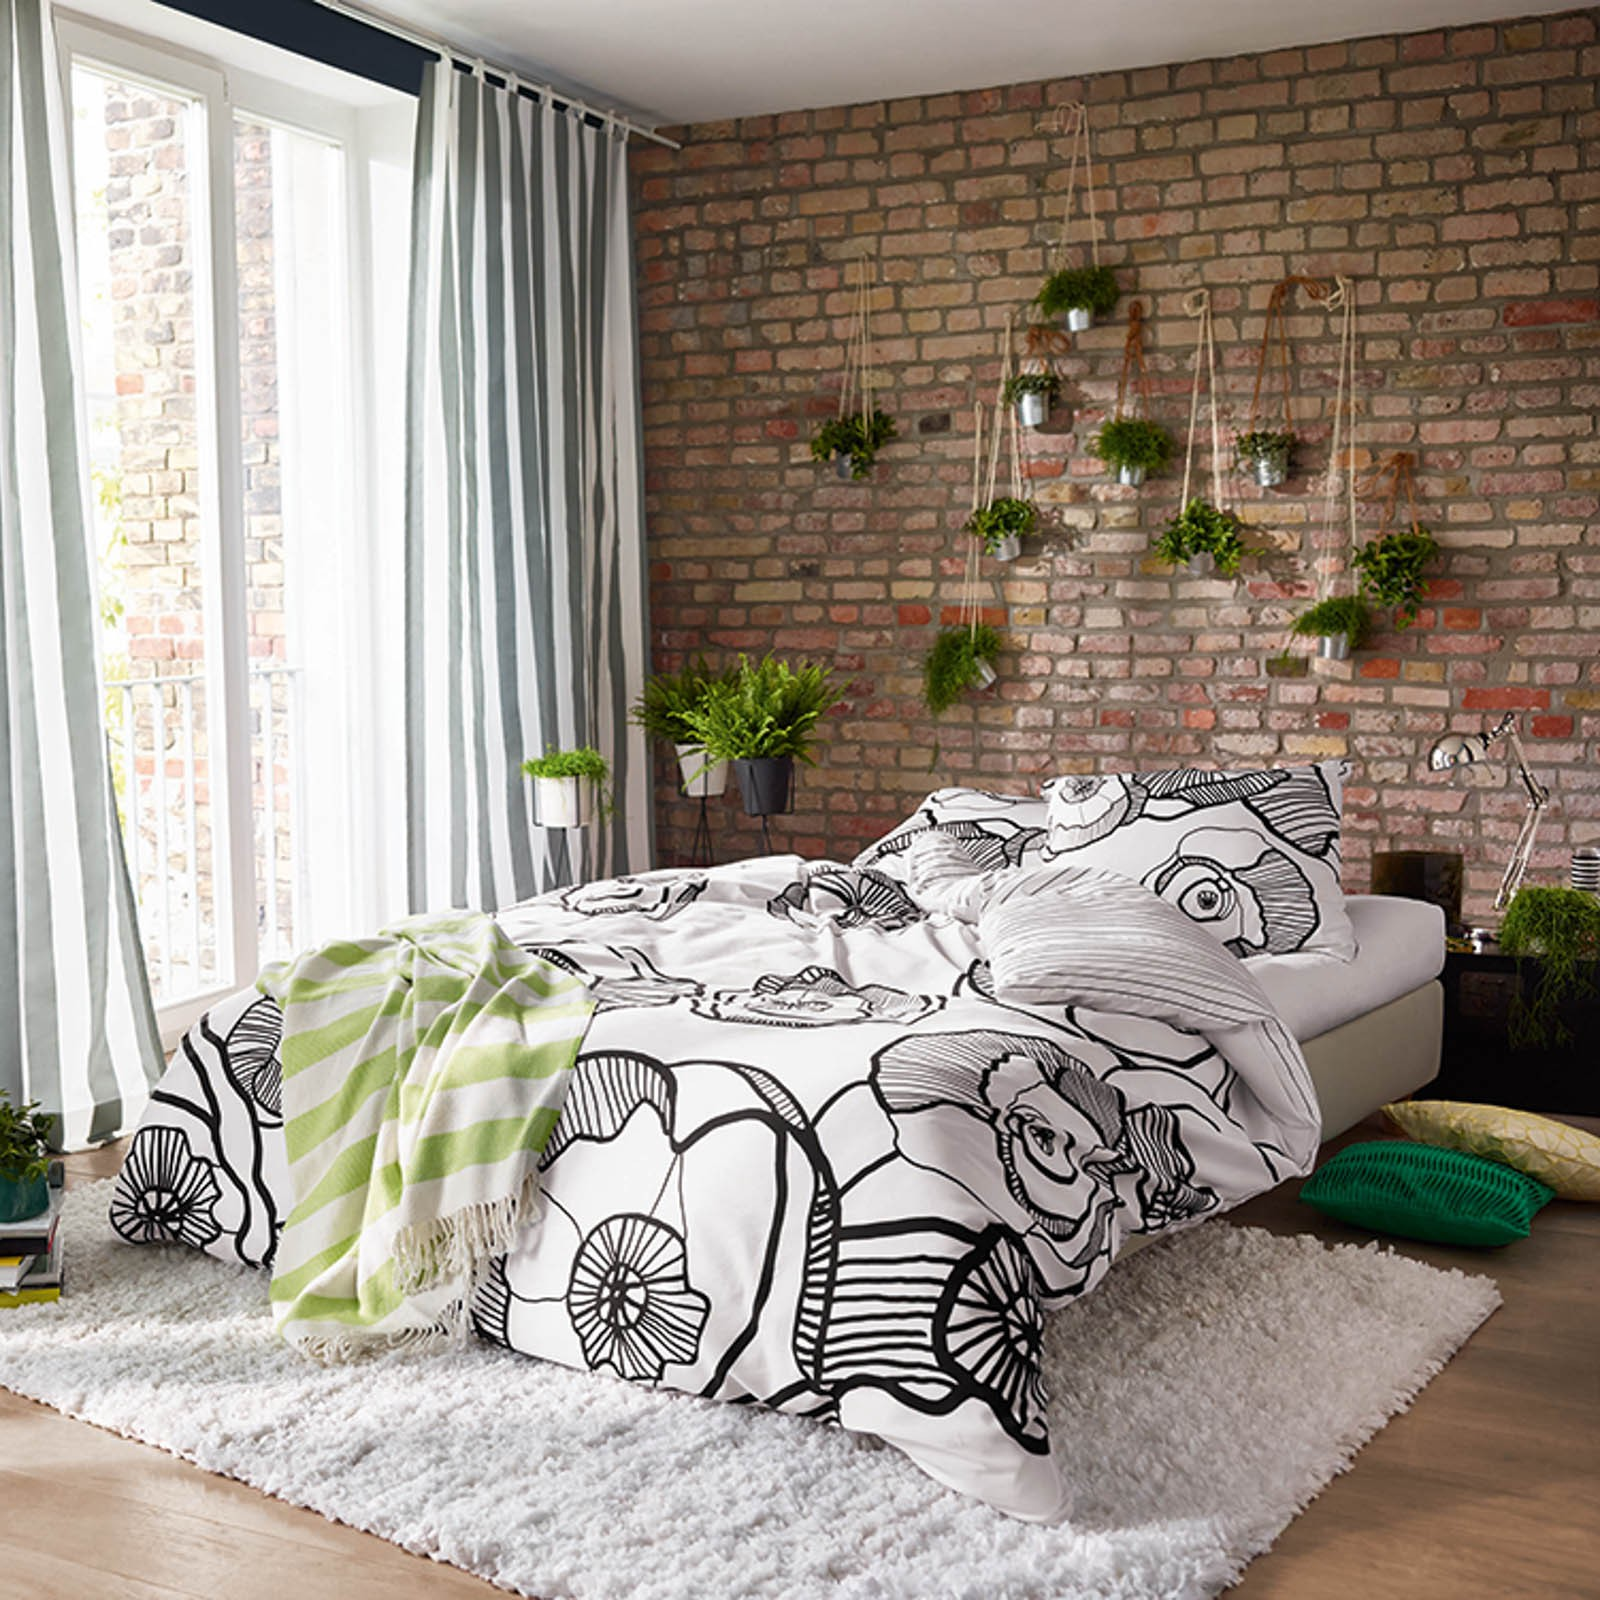 beddroom with bed near window with exposed brick wall